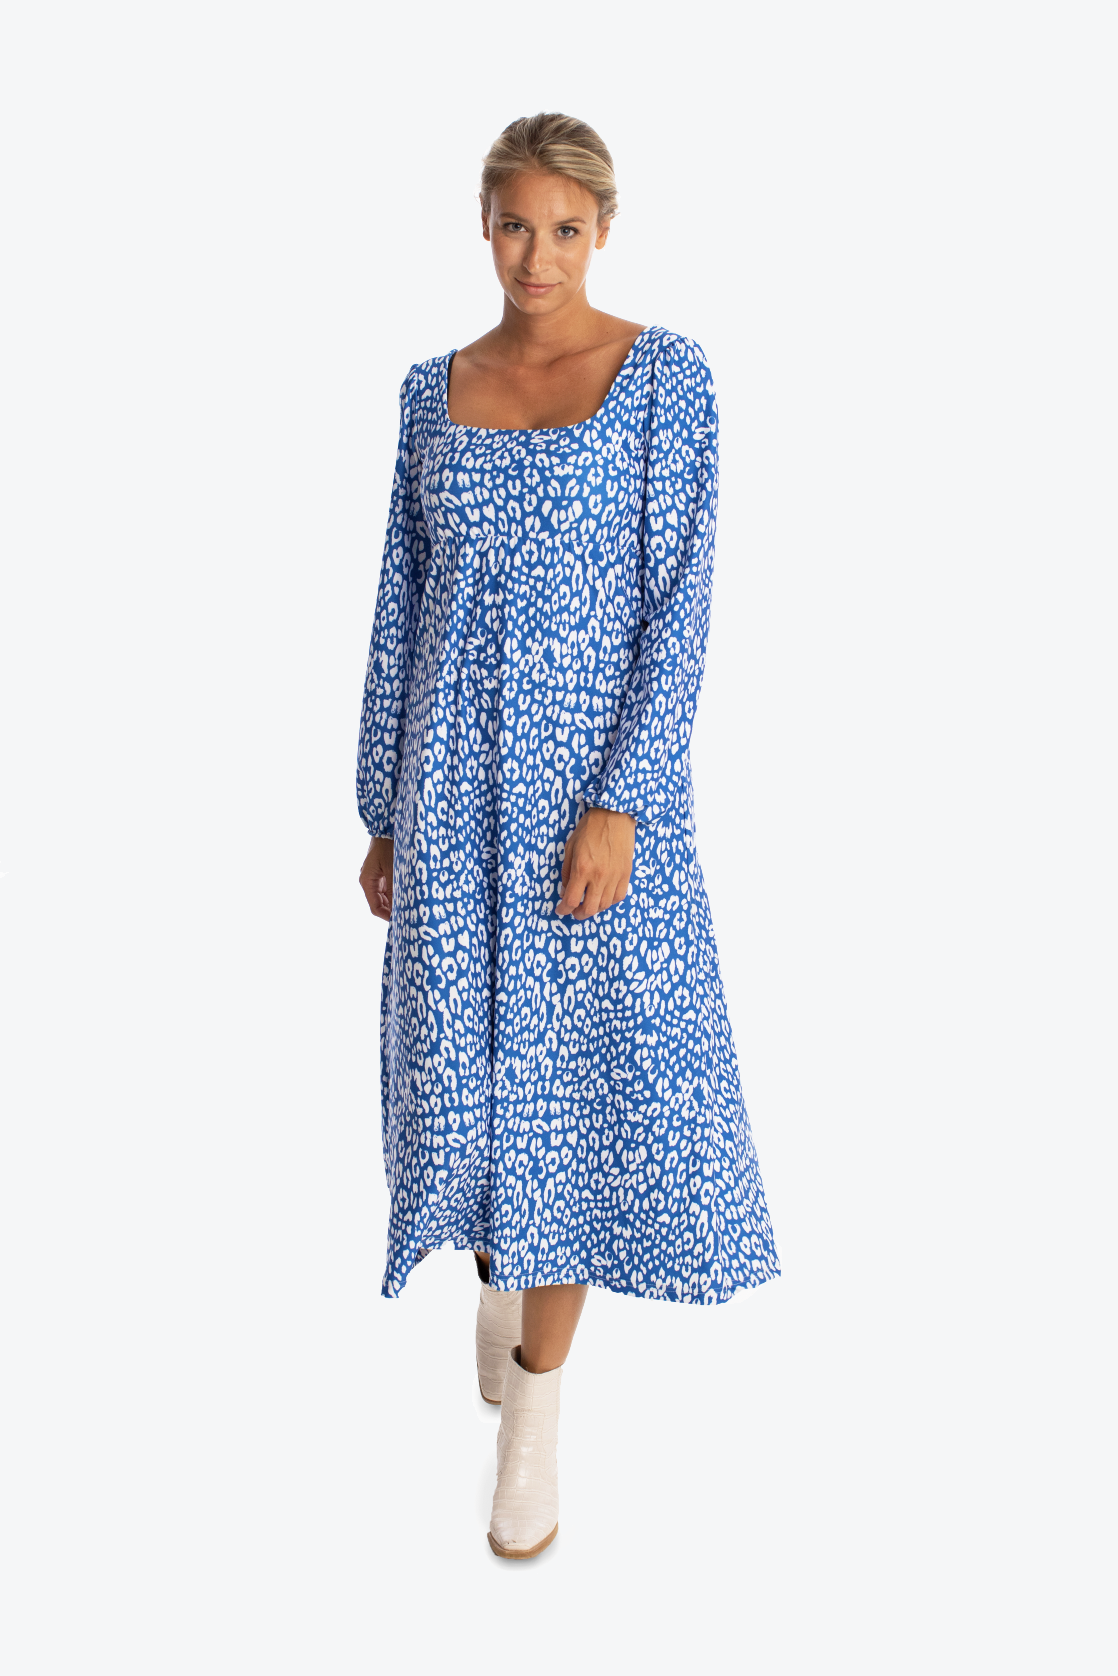 The Shea Dress - Denim Spot